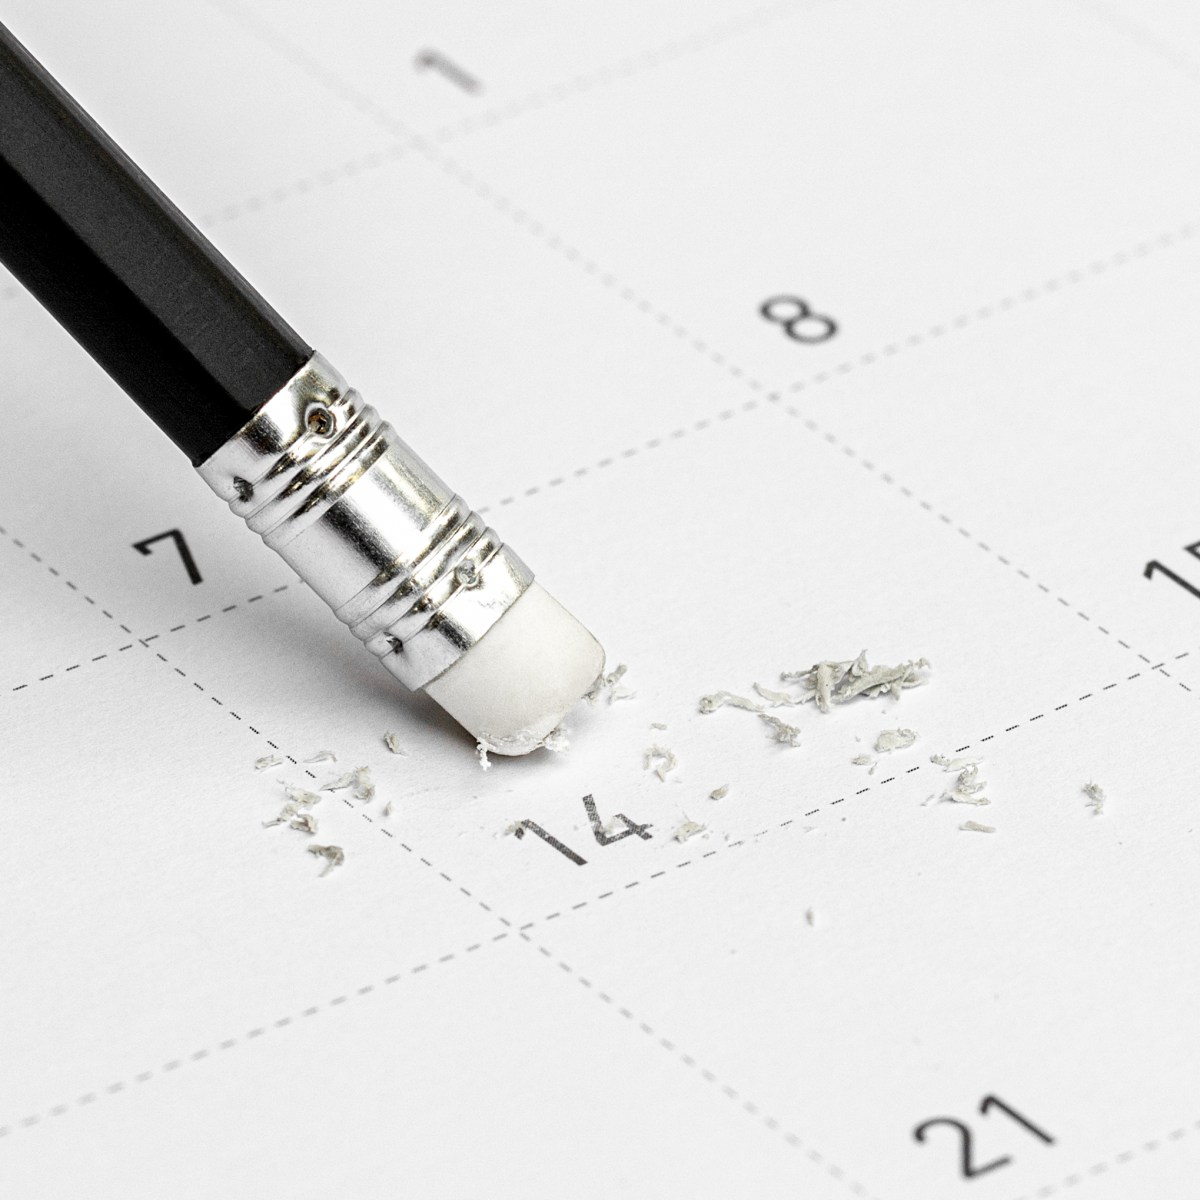 pencil erasing item on calendar